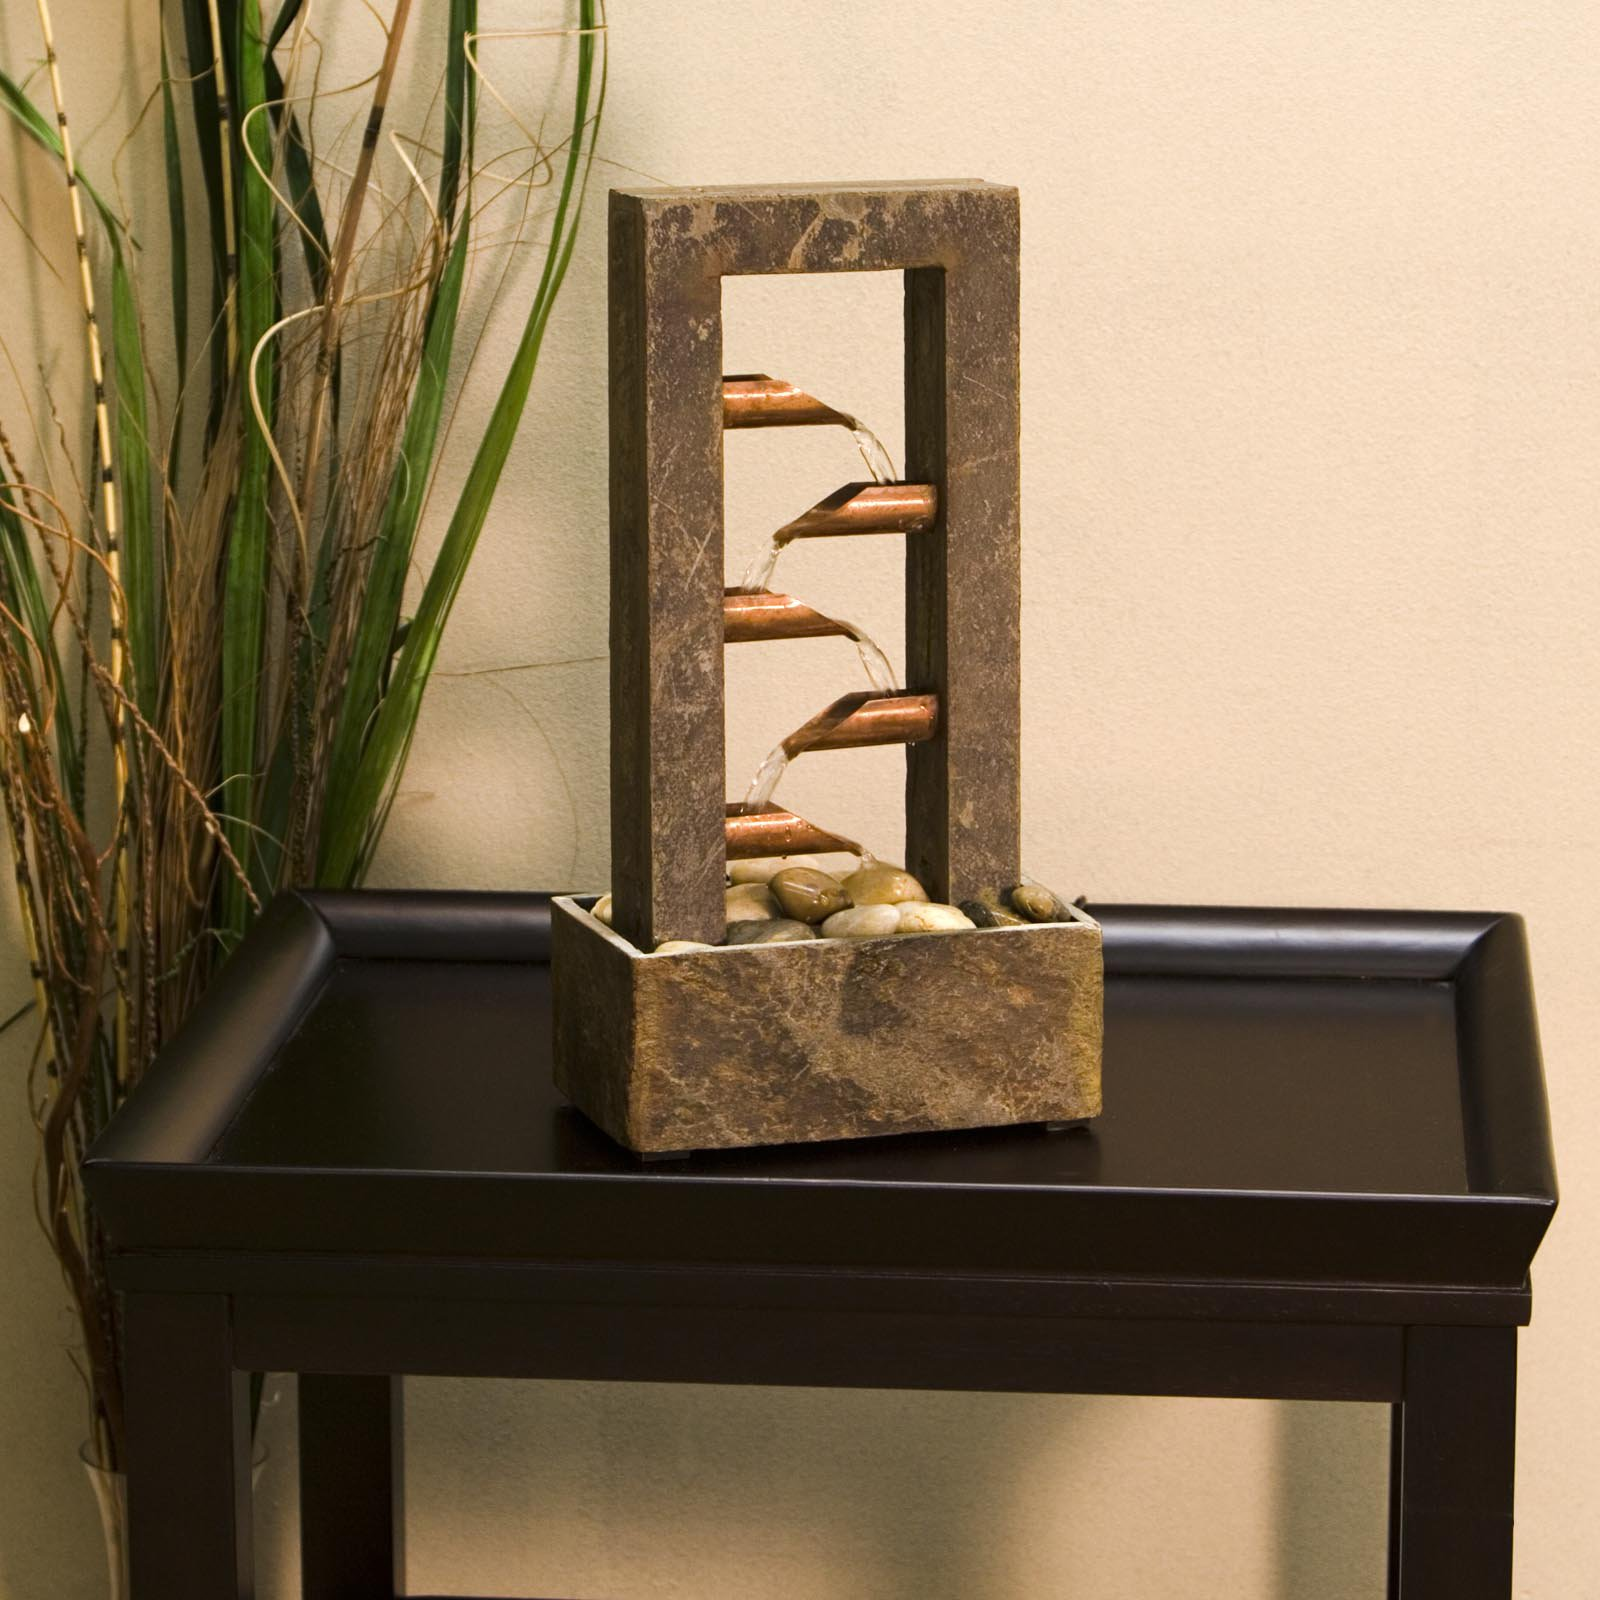 Bamboo designs for wall